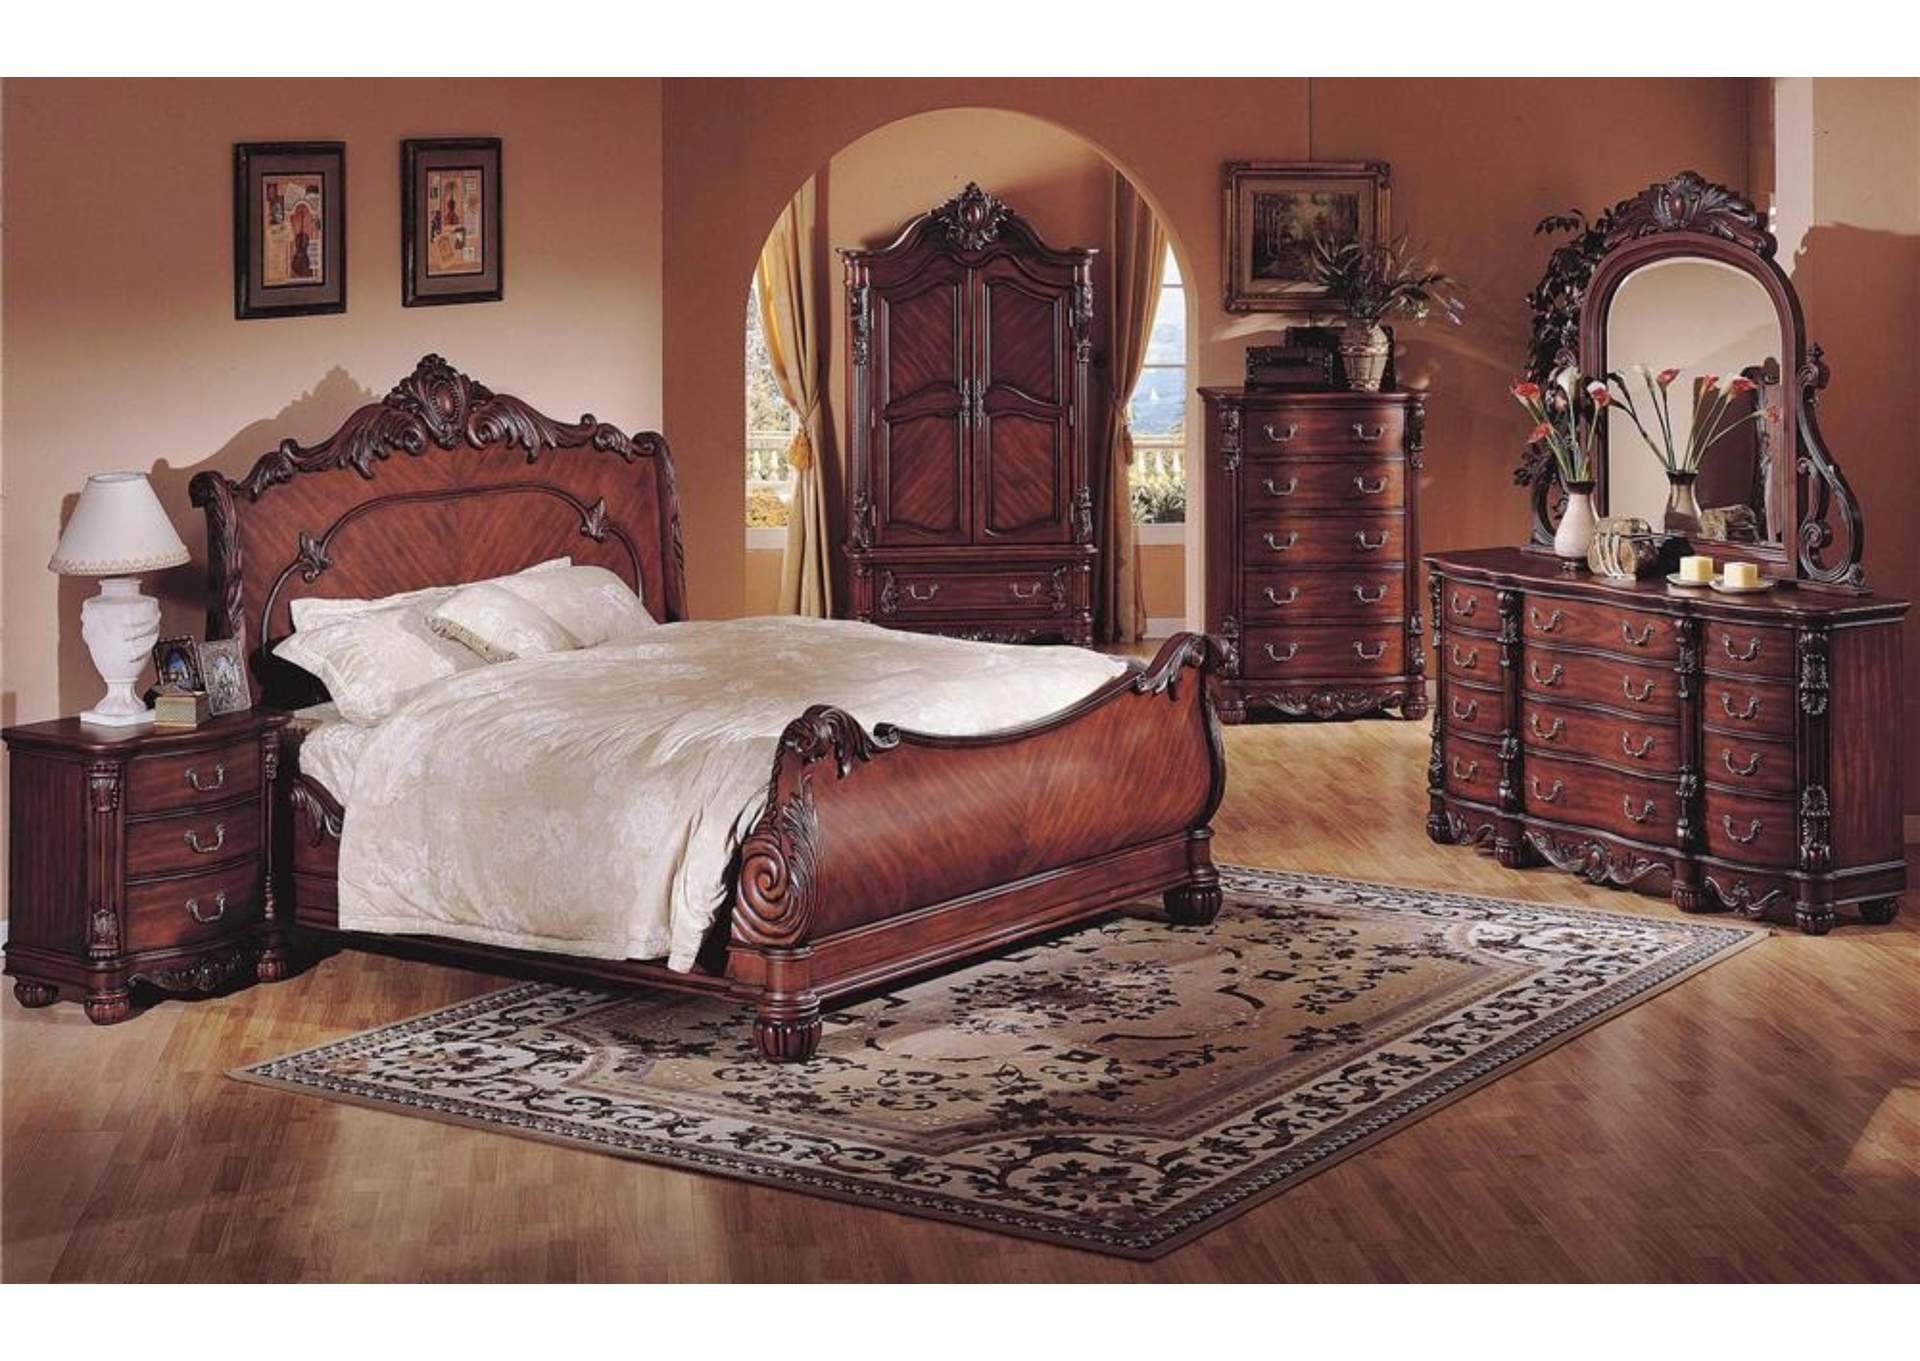 Queens Rich Cherry Sleigh Queen 4 Piece Bedroom Set W/ Nightstand, Dresser & Mirror,Global Trading